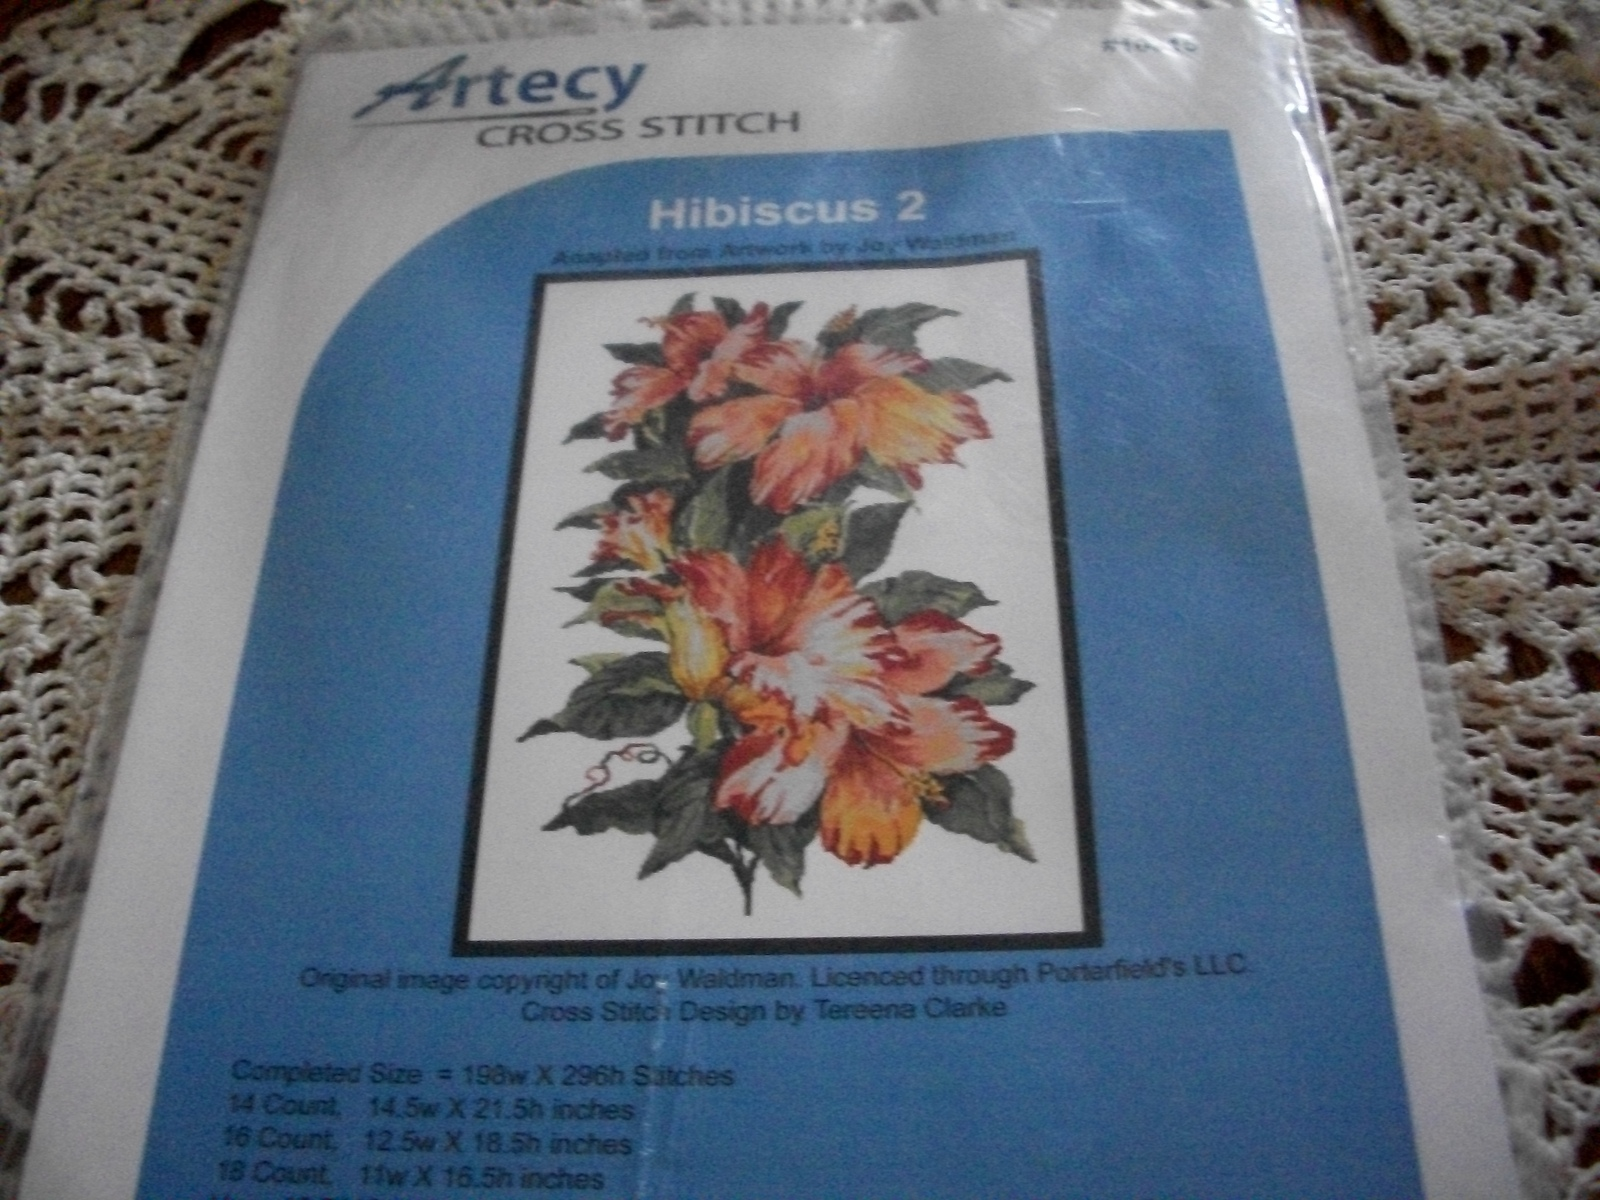 Primary image for Artecy Cross Stitch Hibiscus 2 #10315 Chart